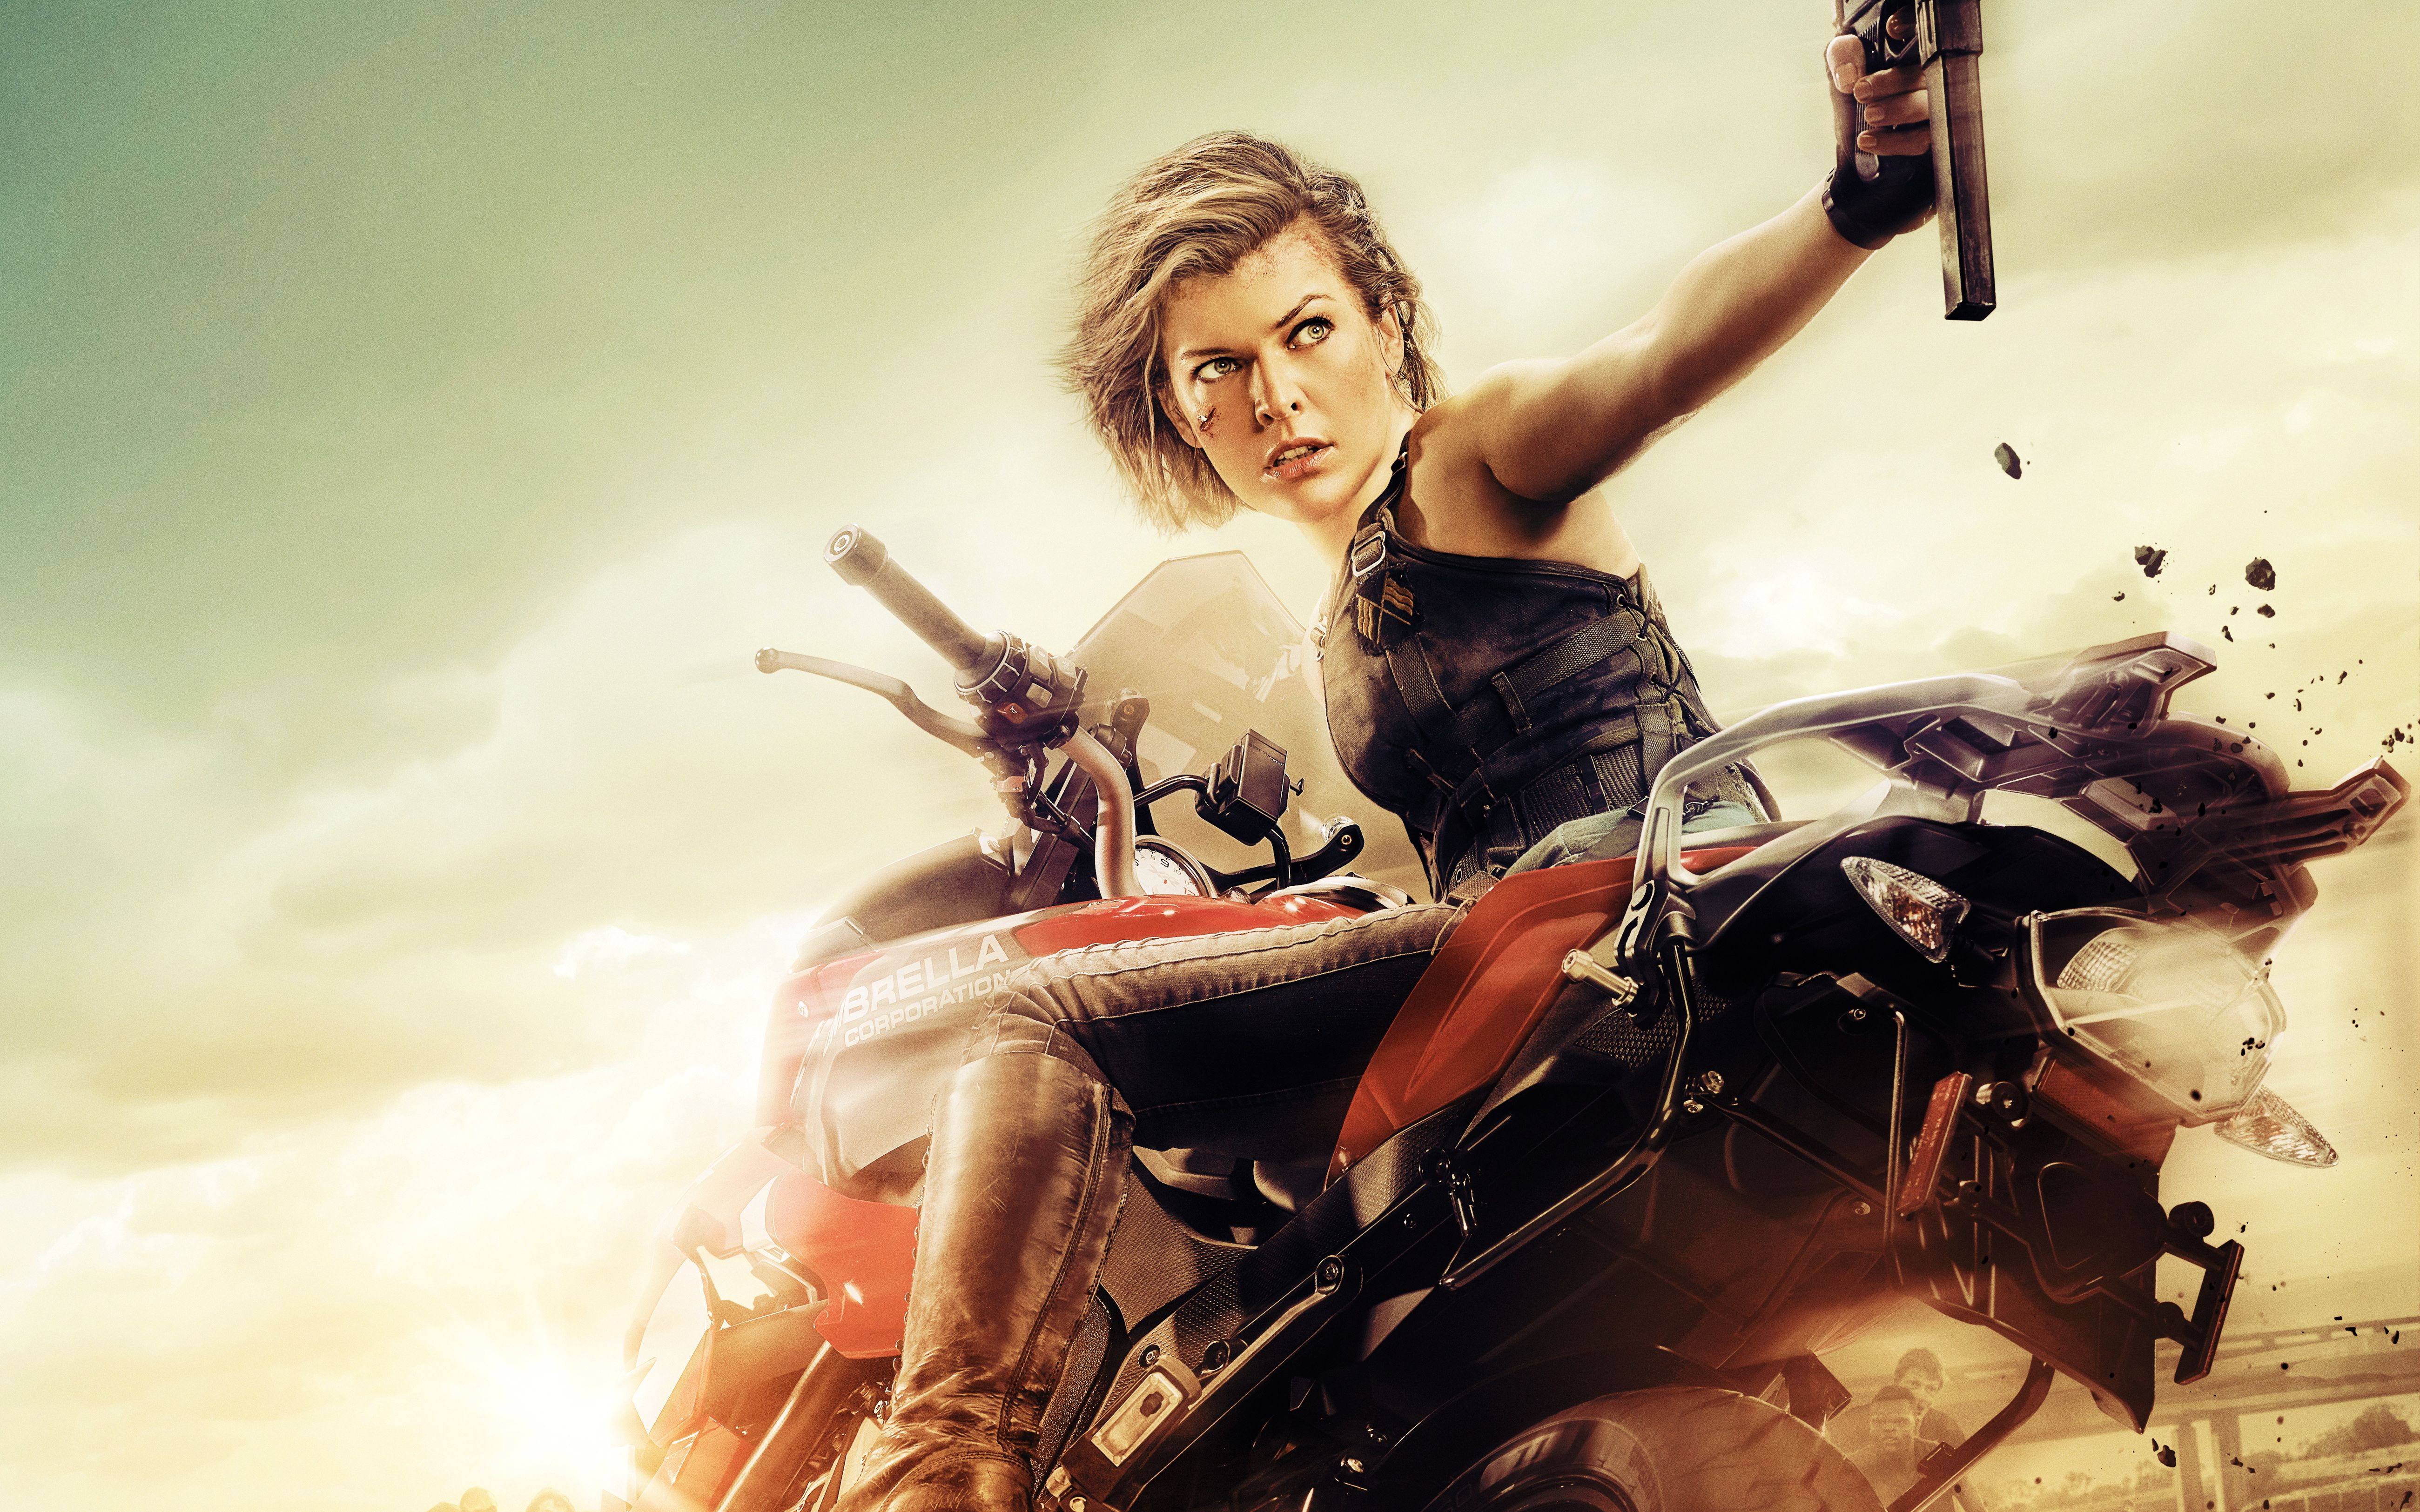 Milla Jovovich Resident Evil The Final Chapter - This HD wallpaper is based  on Resident Evil: The Final Chapt… | Resident evil, Resident evil alice,  Milla jovovich